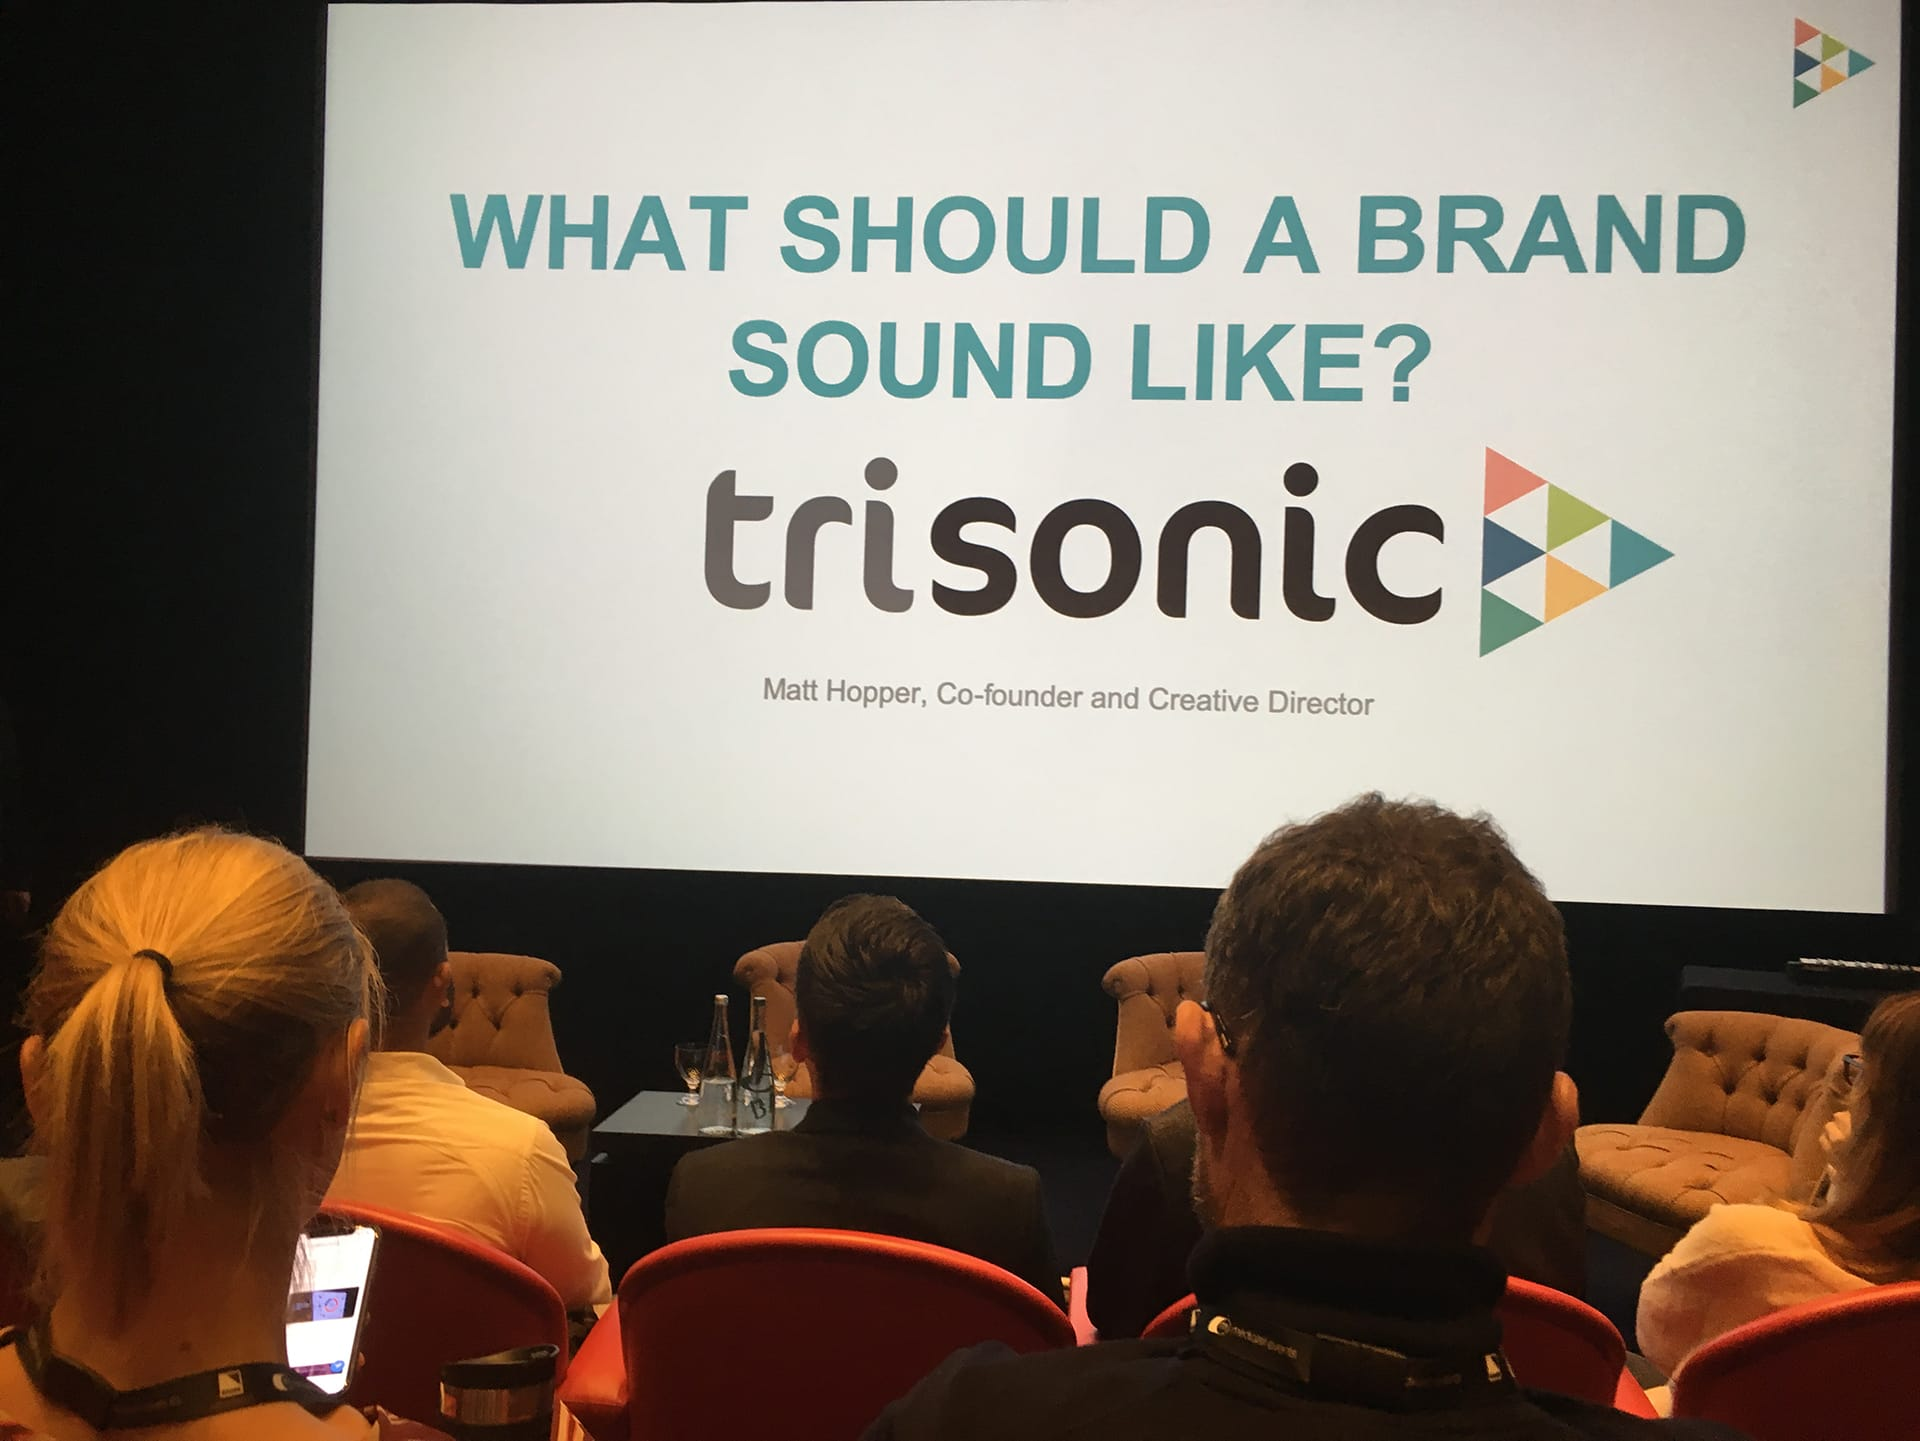 Trisonic's Matt Hopper presenting 'What Should A Brand Sound Like?' at The Future of Audio conference